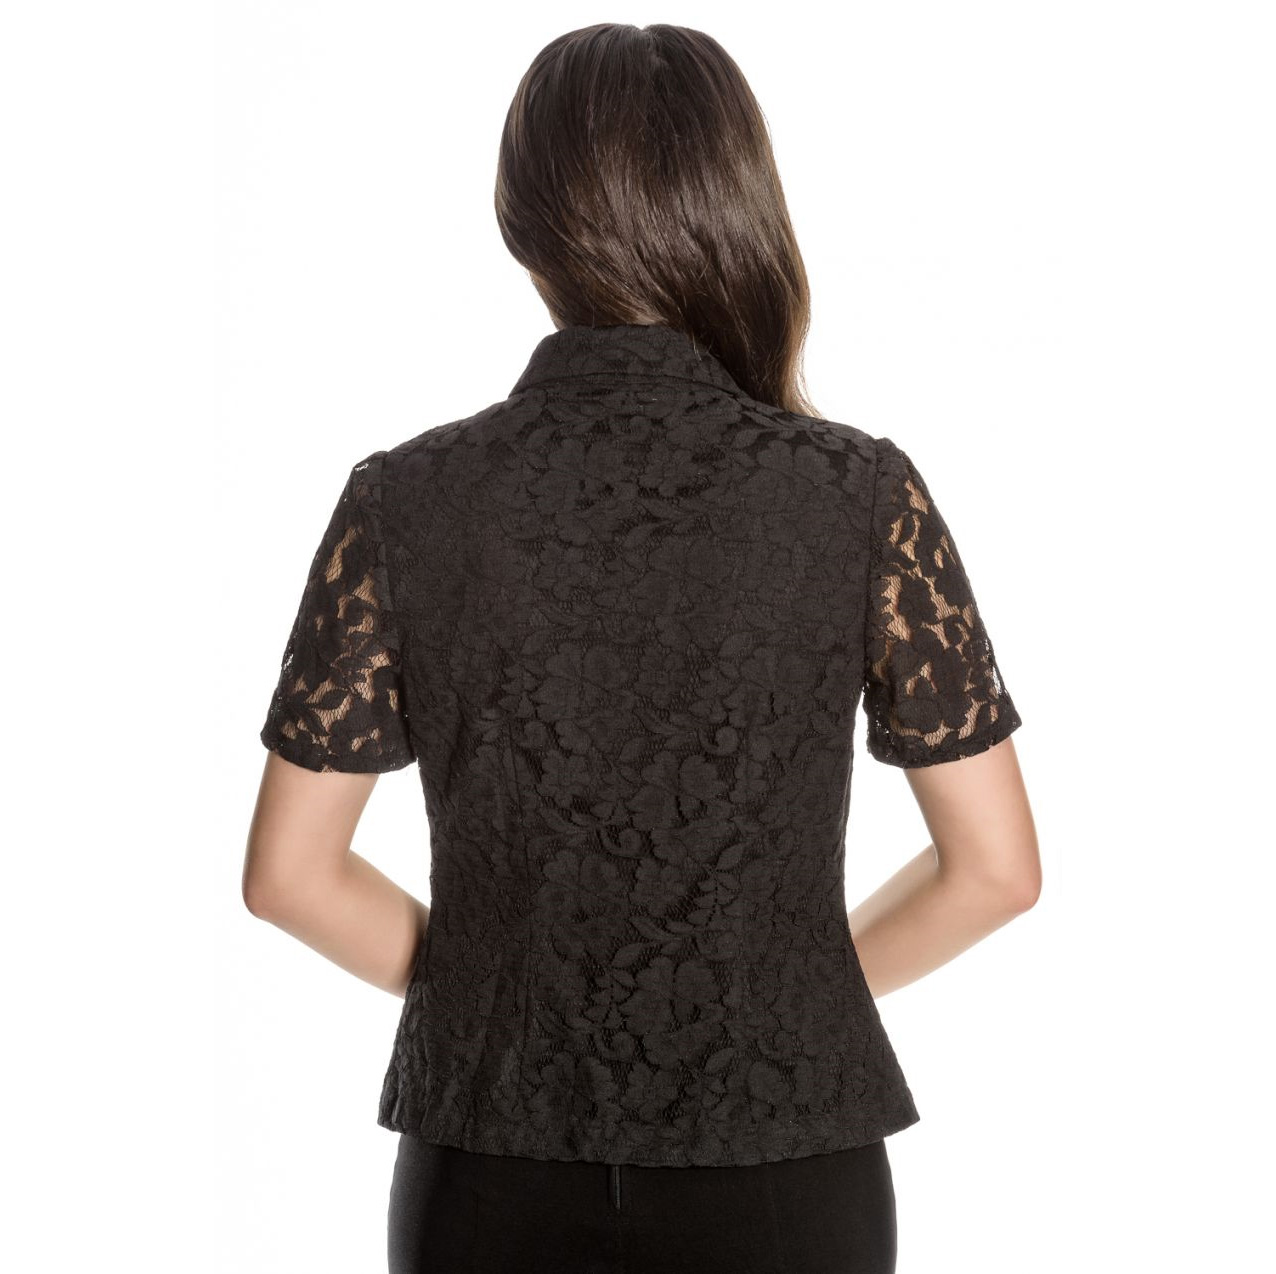 Hell-Bunny-Spin-Doctor-Vampire-Gothic-Shirt-Top-ROWENA-Lace-Blouse-All-Sizes Indexbild 9